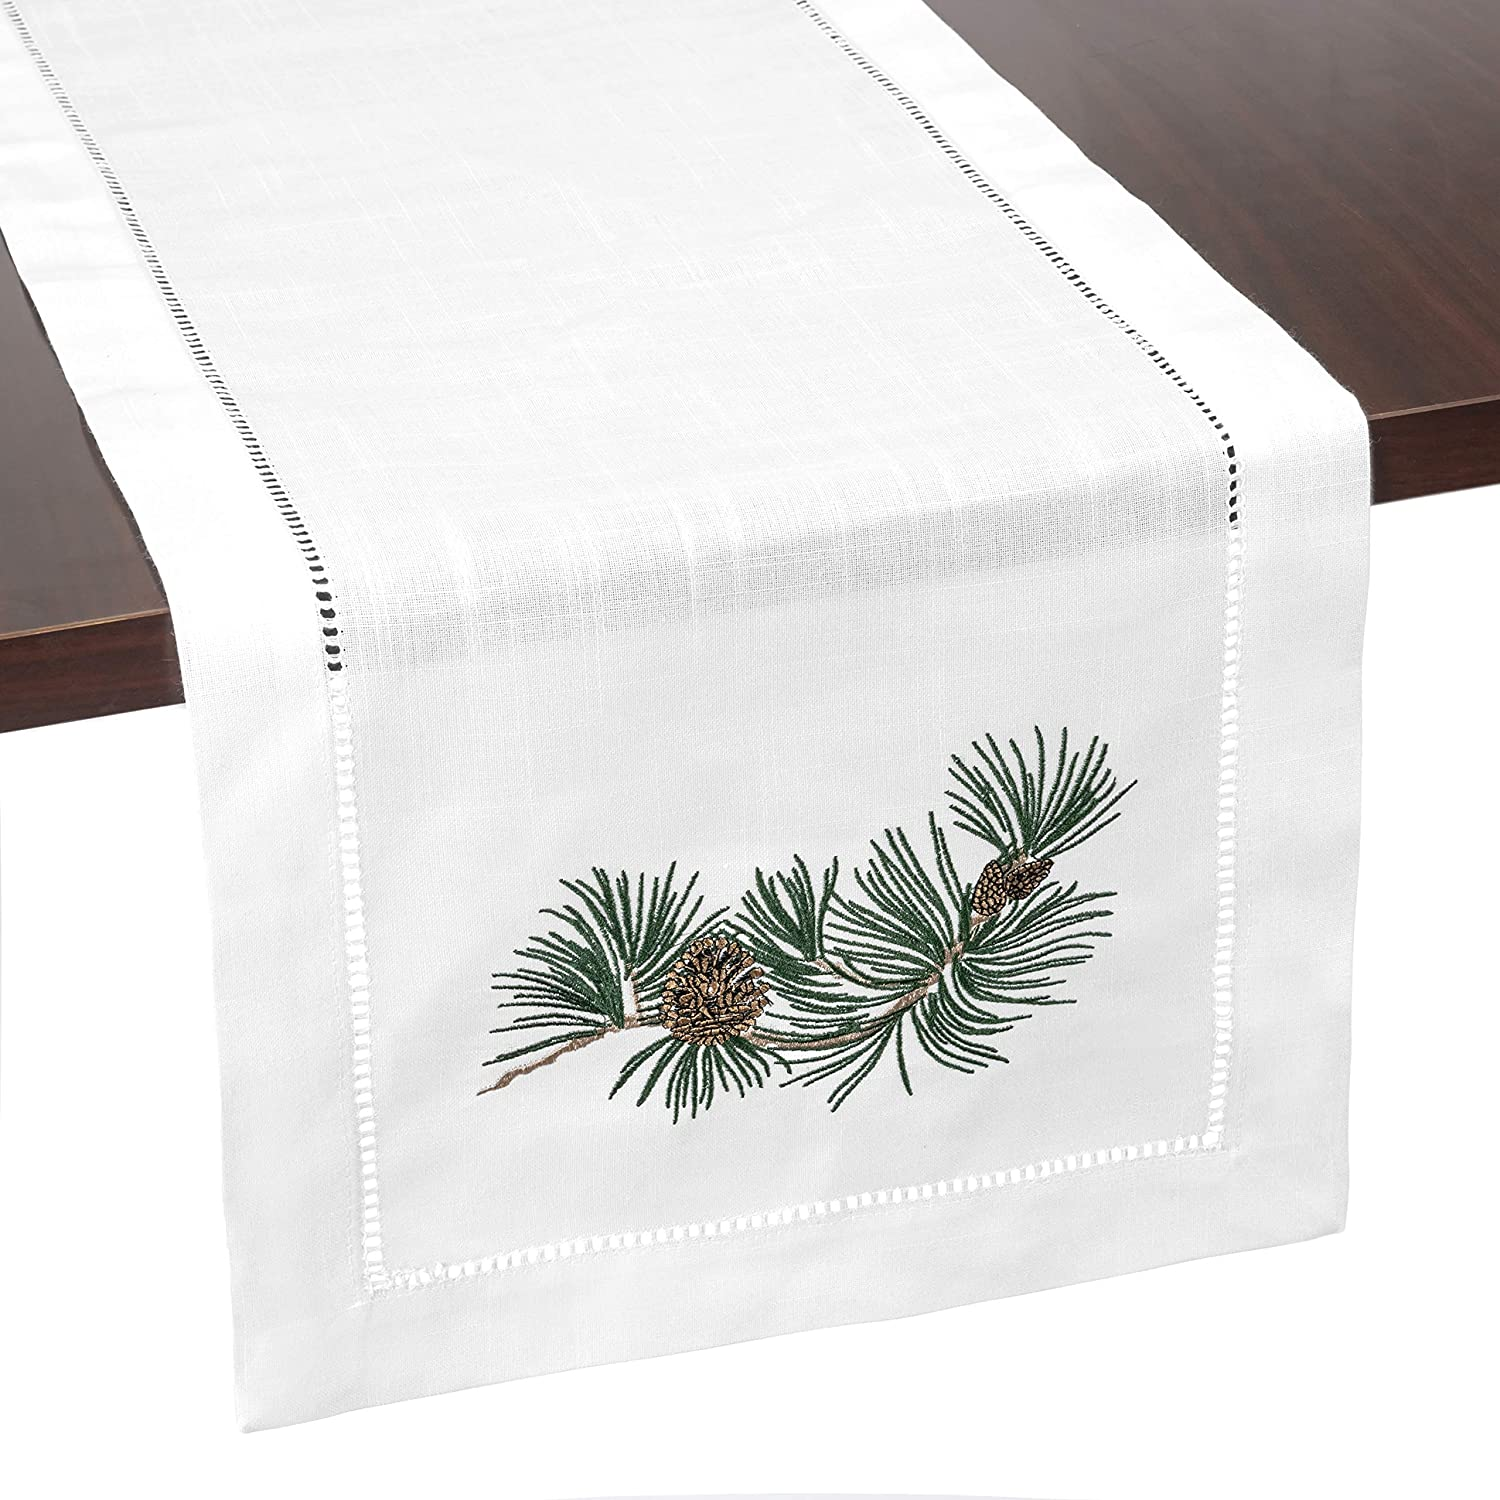 Brio Trends Hemstitch Table Runner with Embroidered Holiday Pine Cones Rustic Farmhouse Home Decor for Fall Winter Christmas or Thanksgiving | White 14 x 112 inch